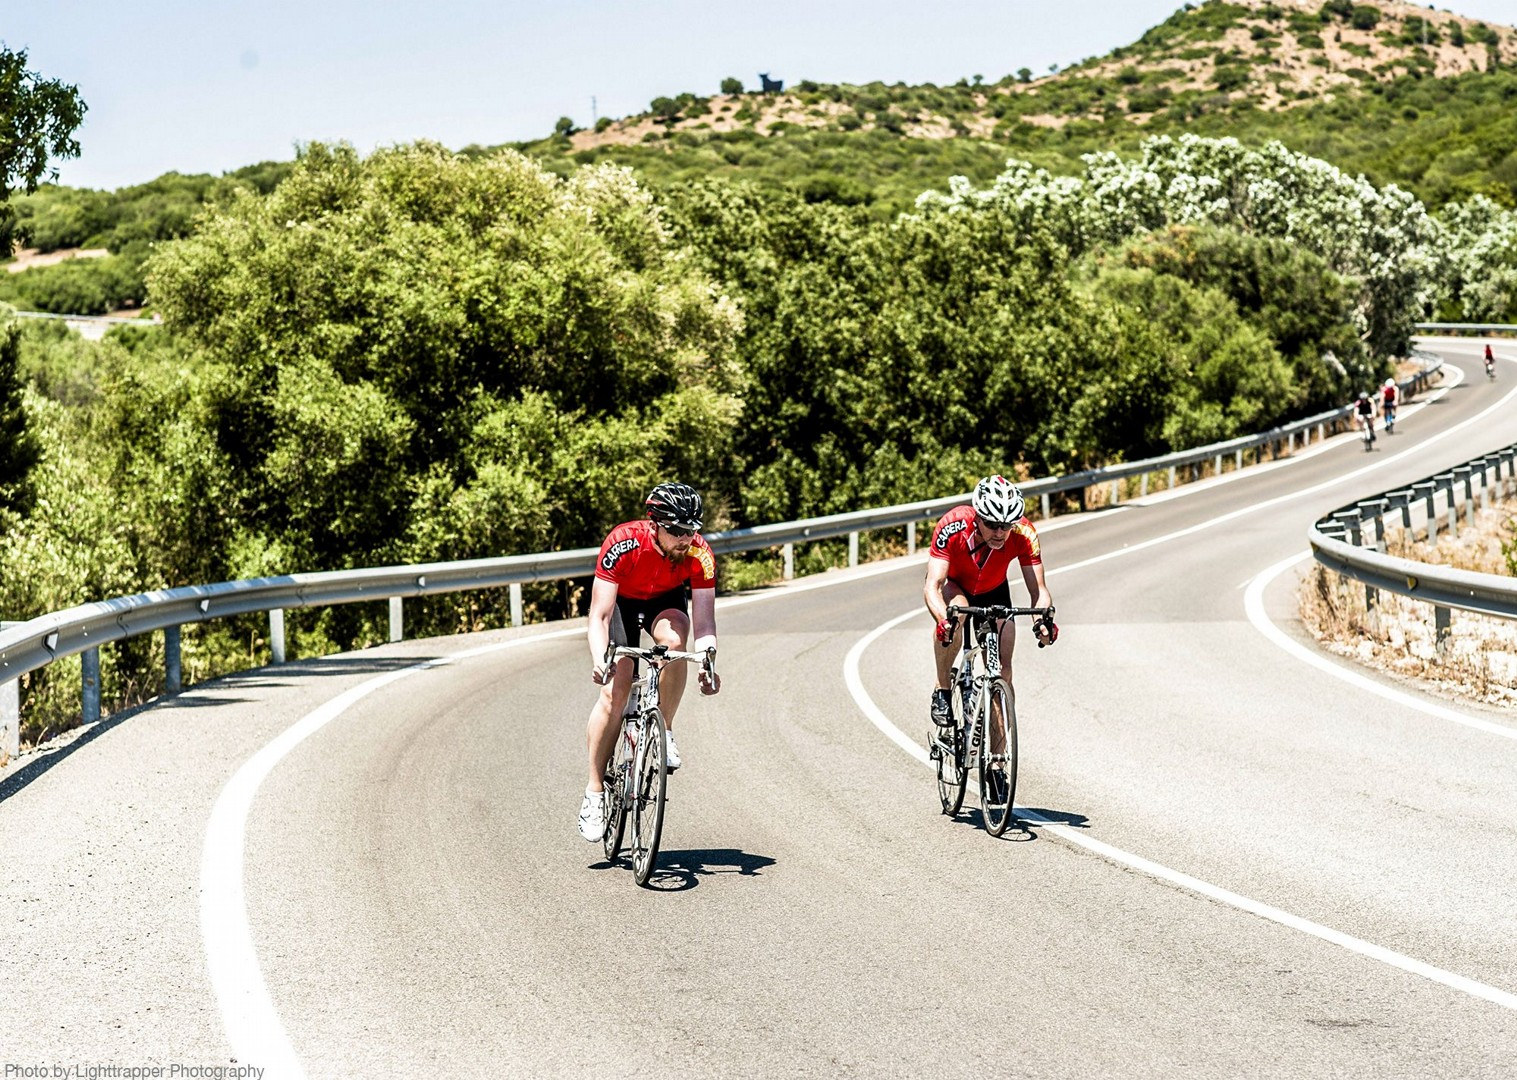 road-cycling-guided-tour-west-andalucia-sierras-skedaddle.jpg - Southern Spain - Andalucia - Los Pueblos Blancos - Guided Road Cycling Holiday - Road Cycling